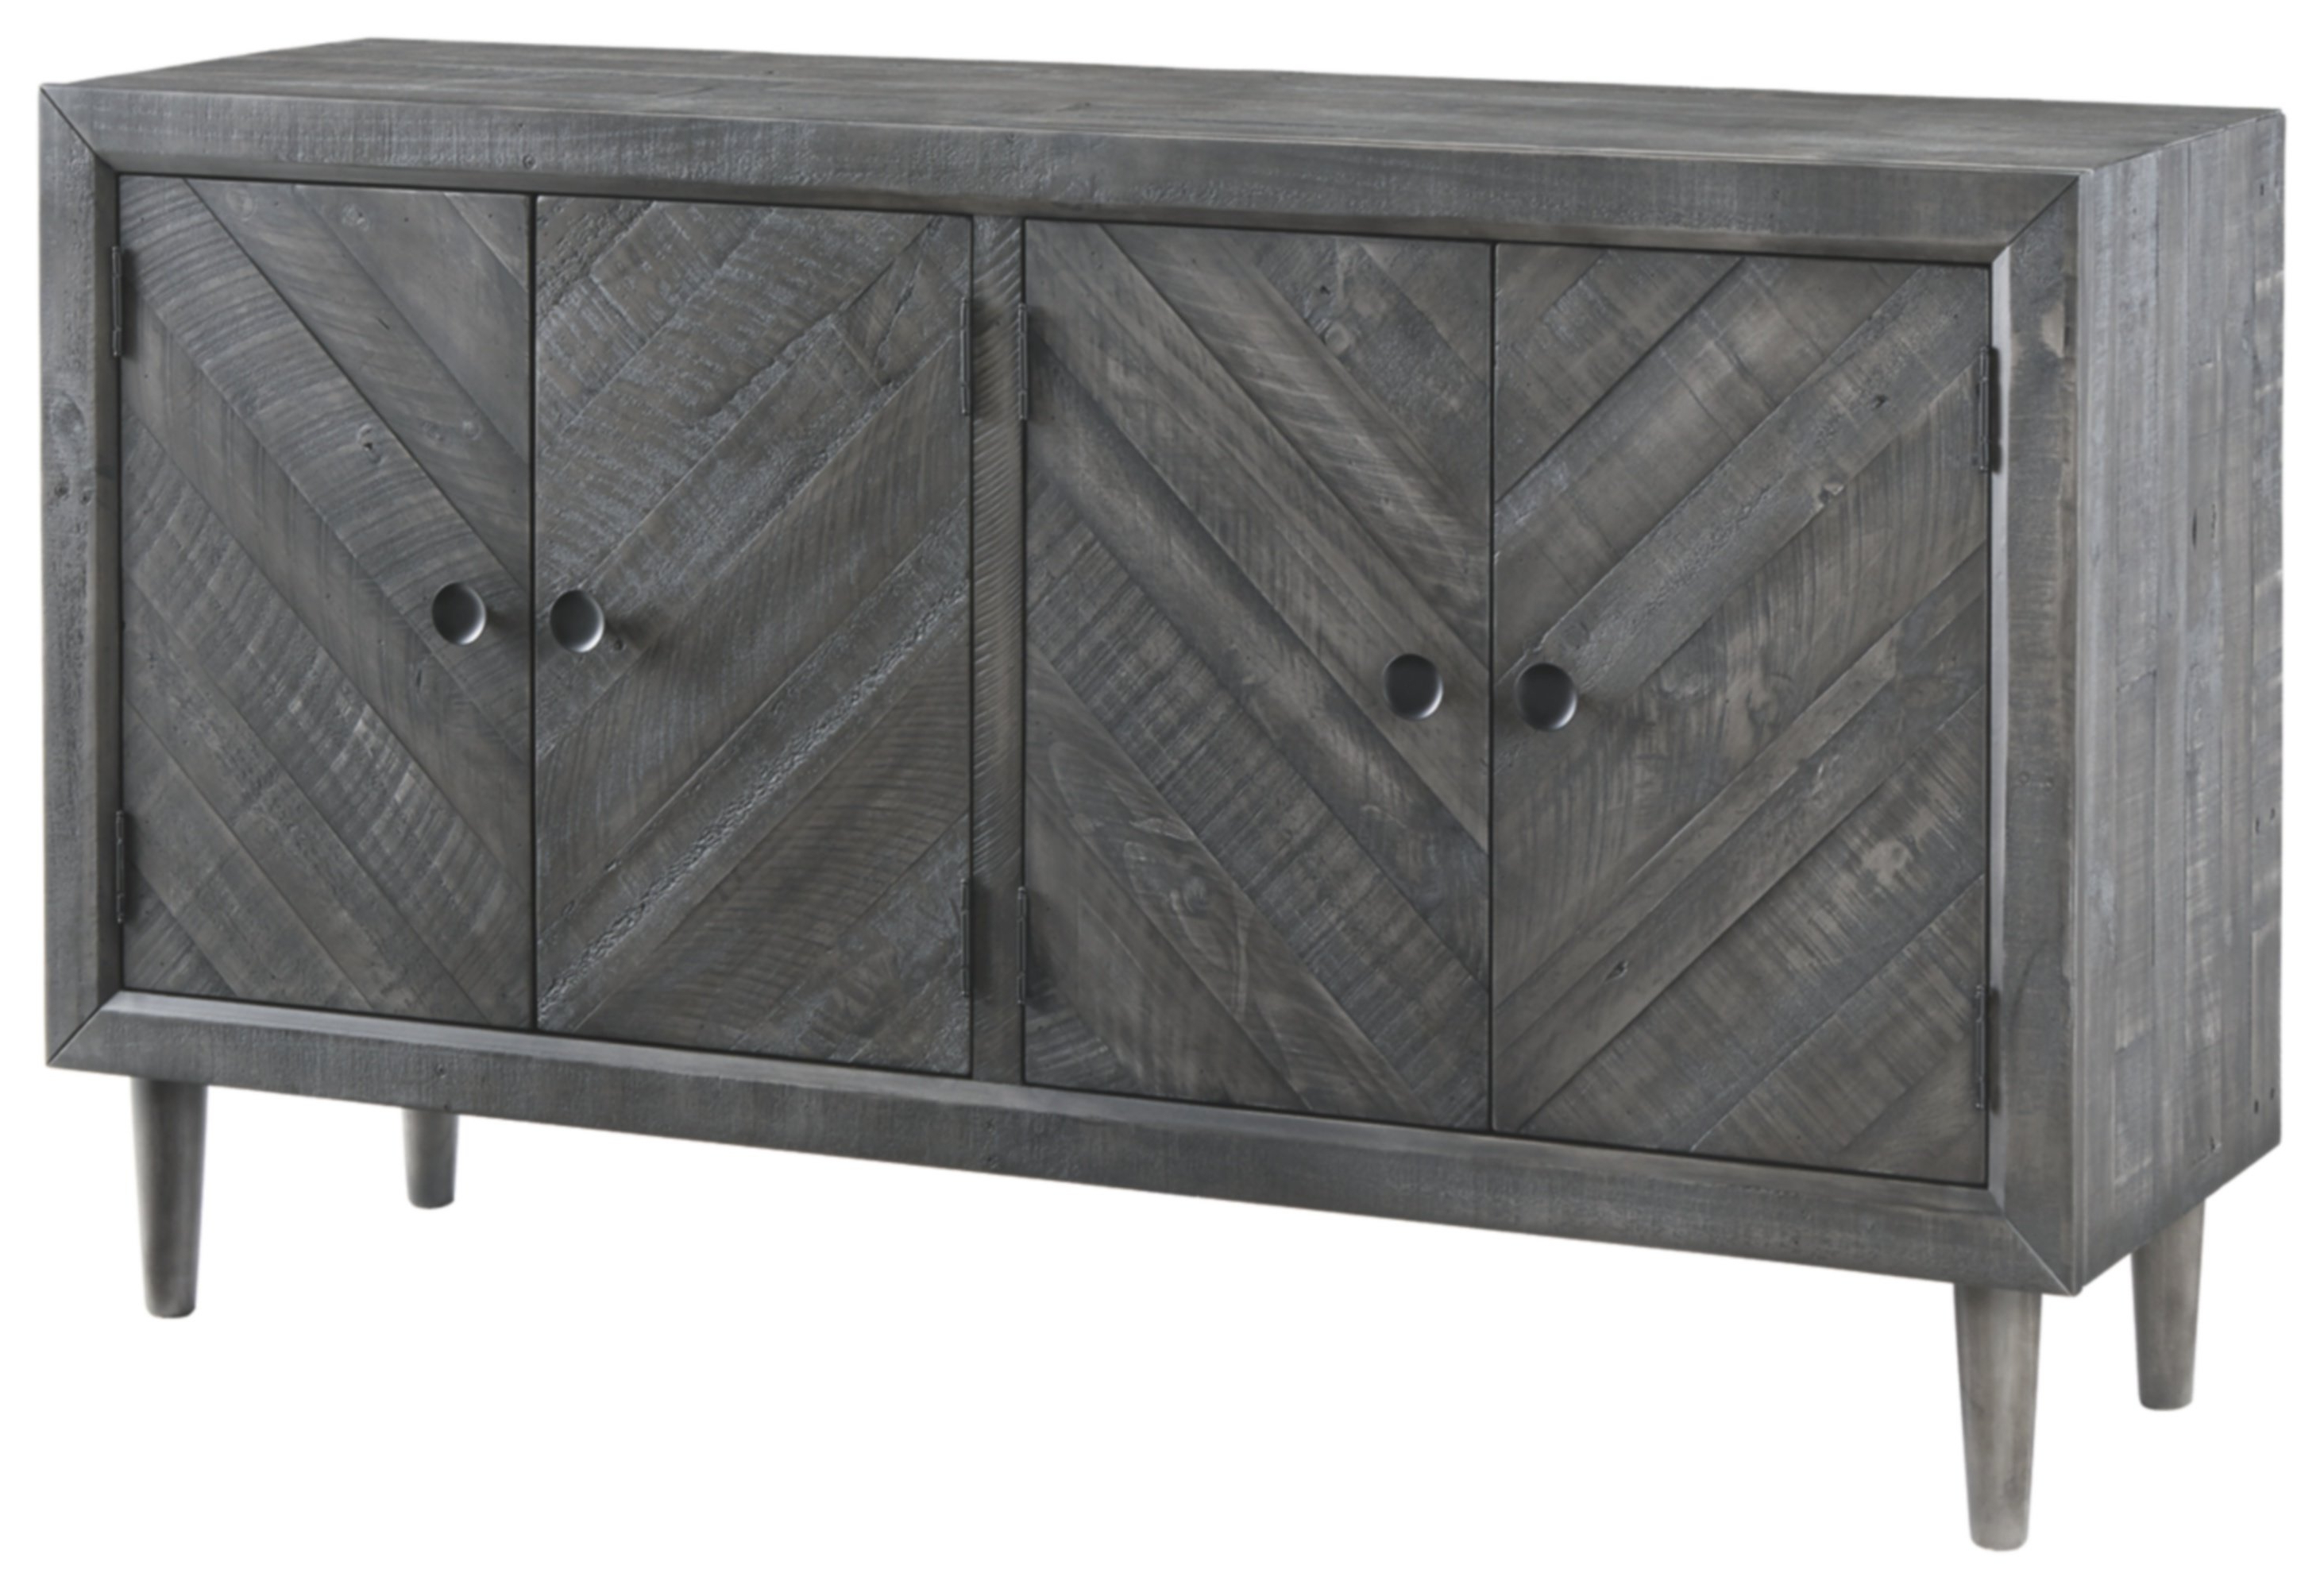 Banach Sideboard Pertaining To Most Recent Mauldin 3 Door Sideboards (Gallery 18 of 20)